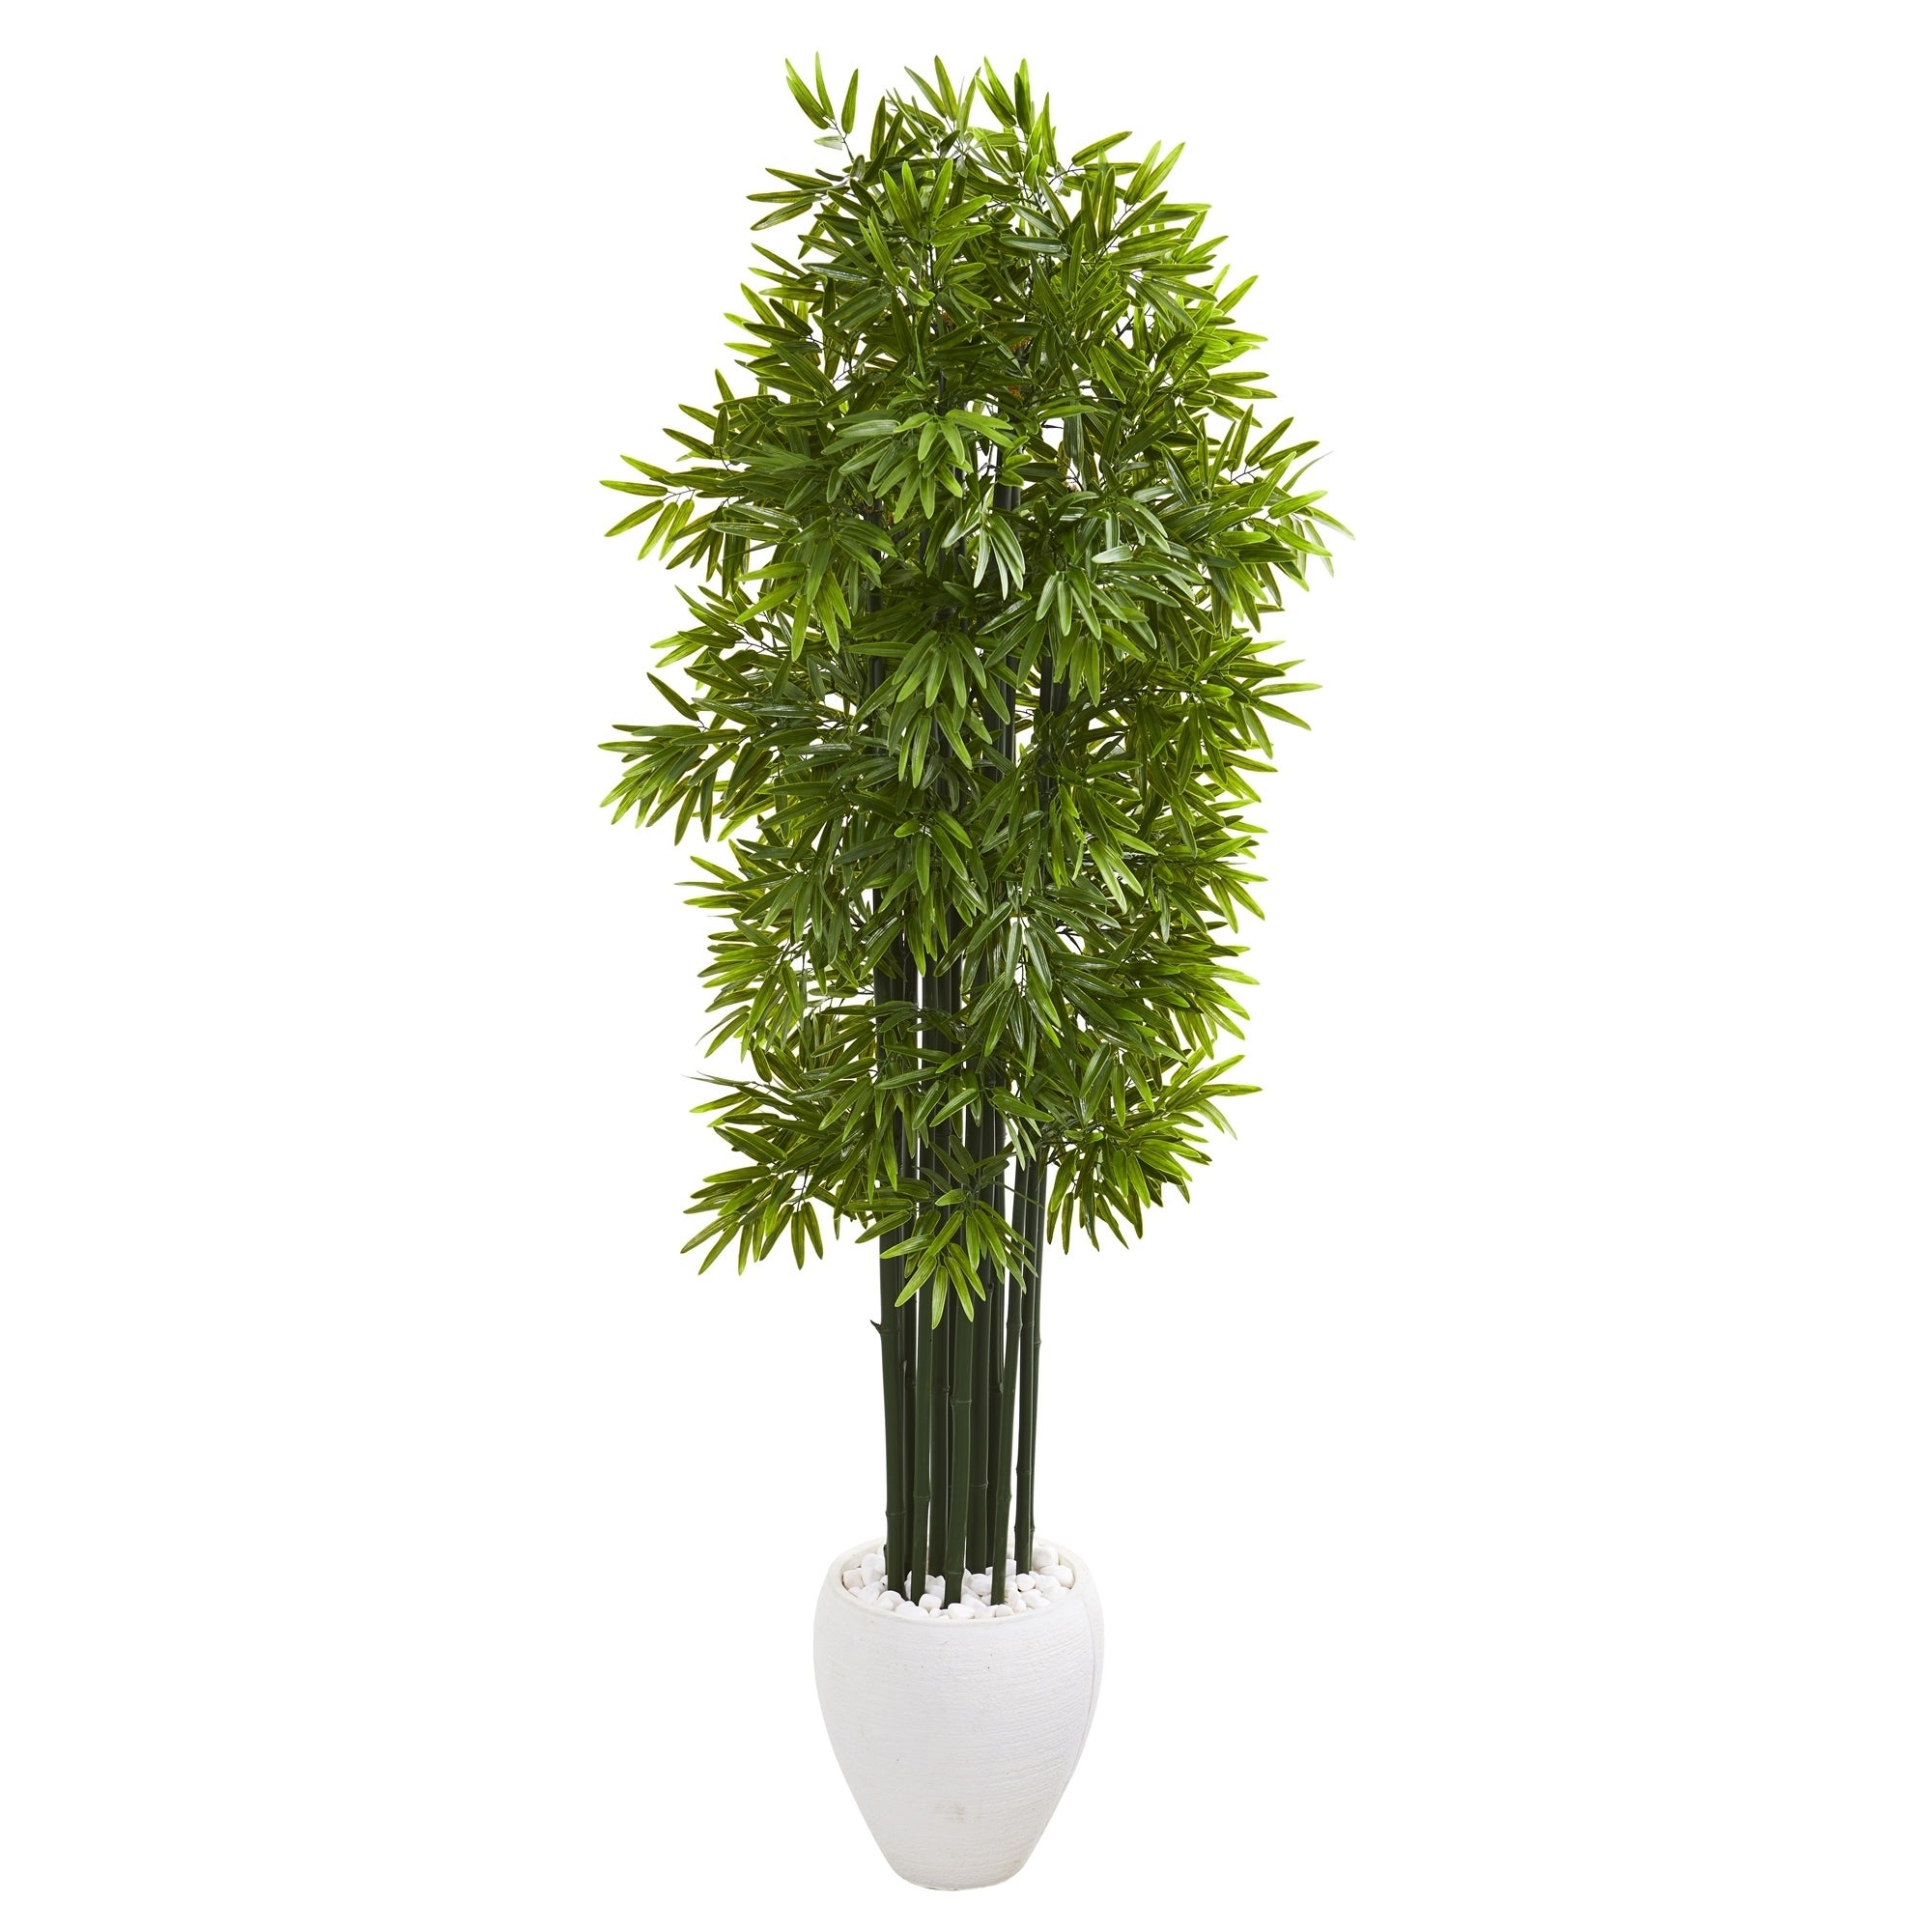 6 Bamboo Artificial Tree with Green Trunks in White Planter UV Resistant (Indoor/Outdoor)